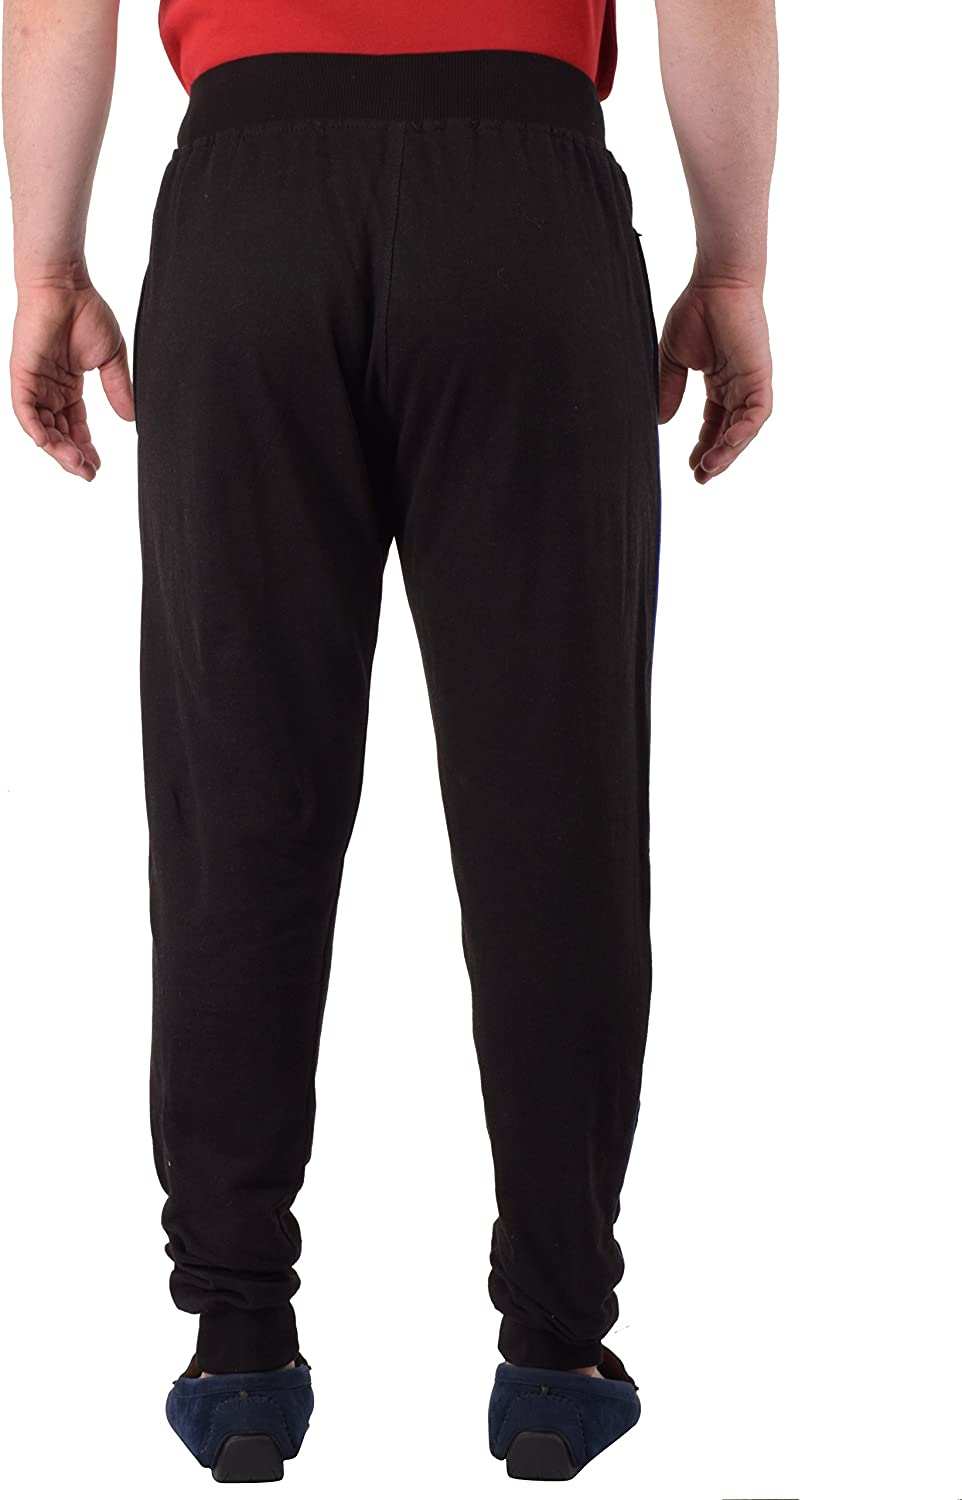 Mens Cotton Running Track Pants//Basic Jogger with 2 Zipper Pockets